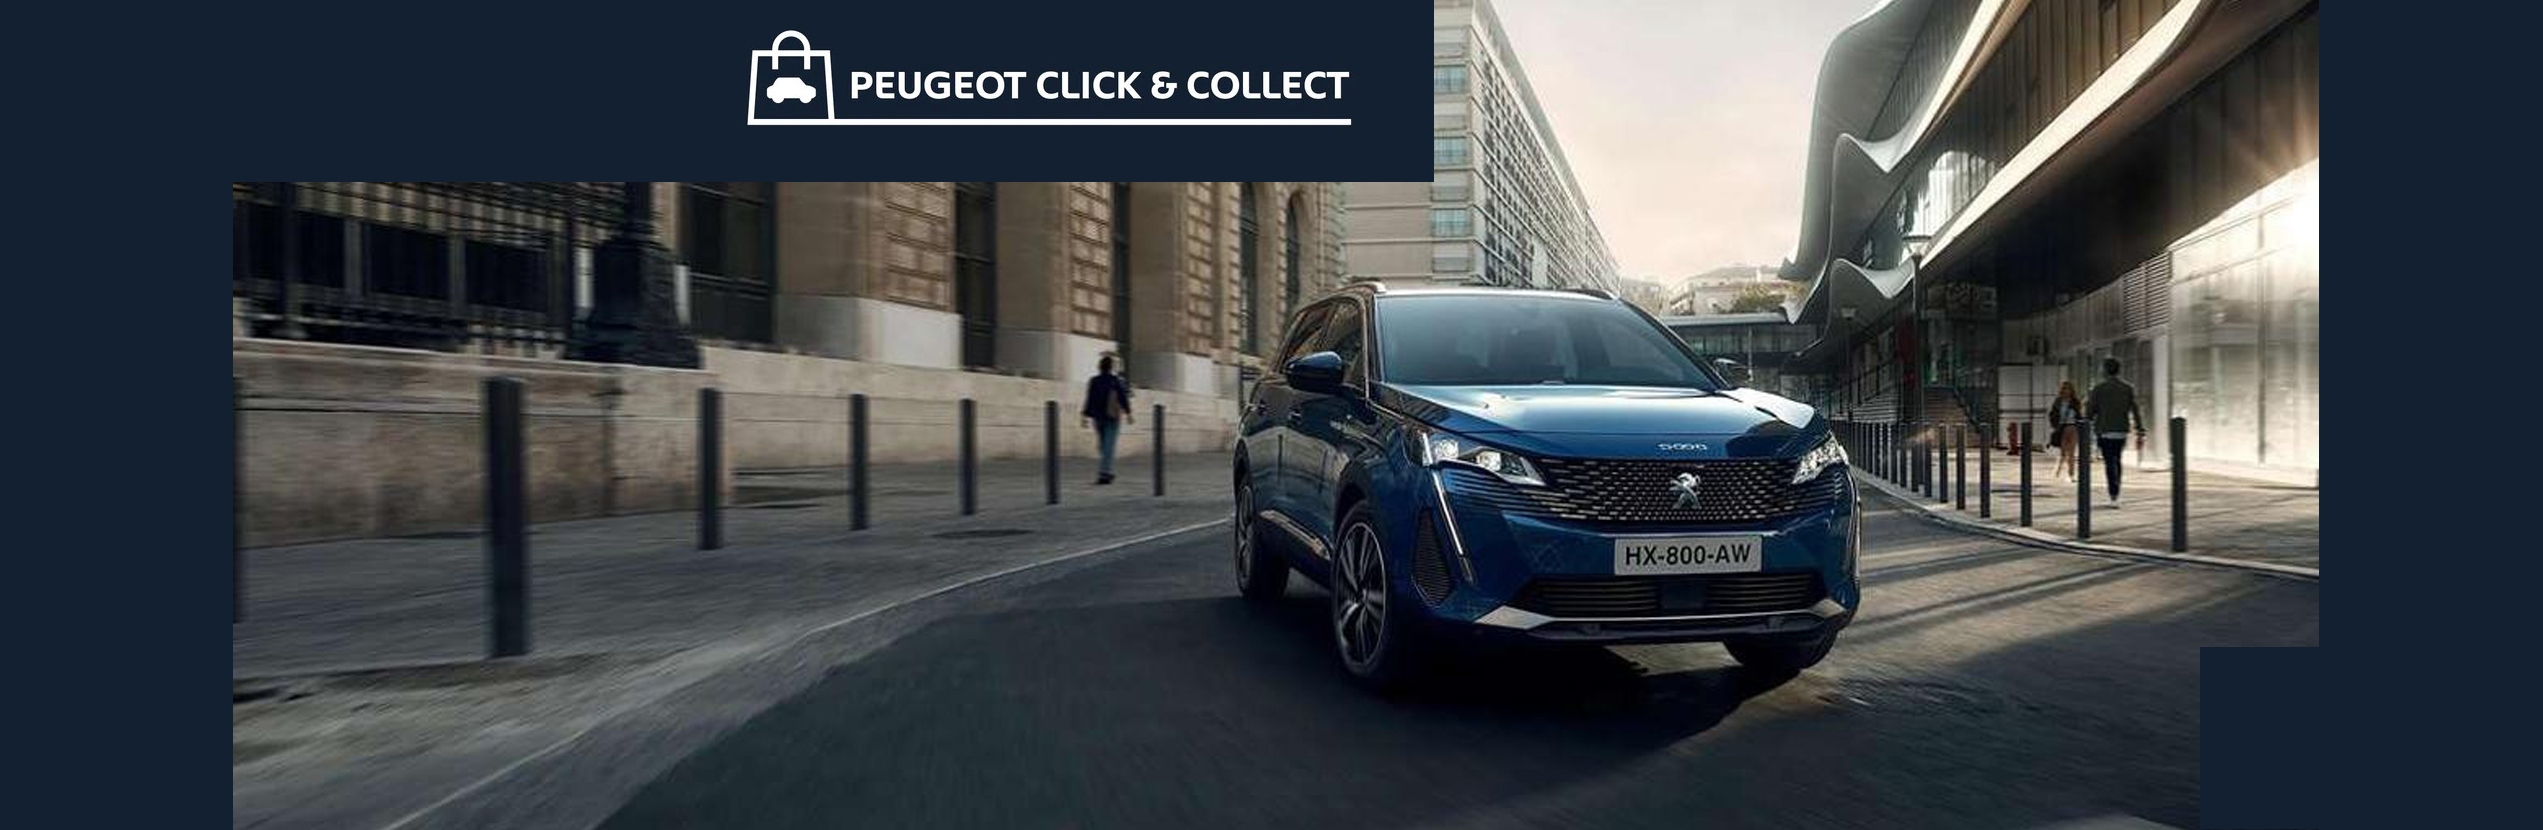 PEUGEOT CLICK & COLLECT